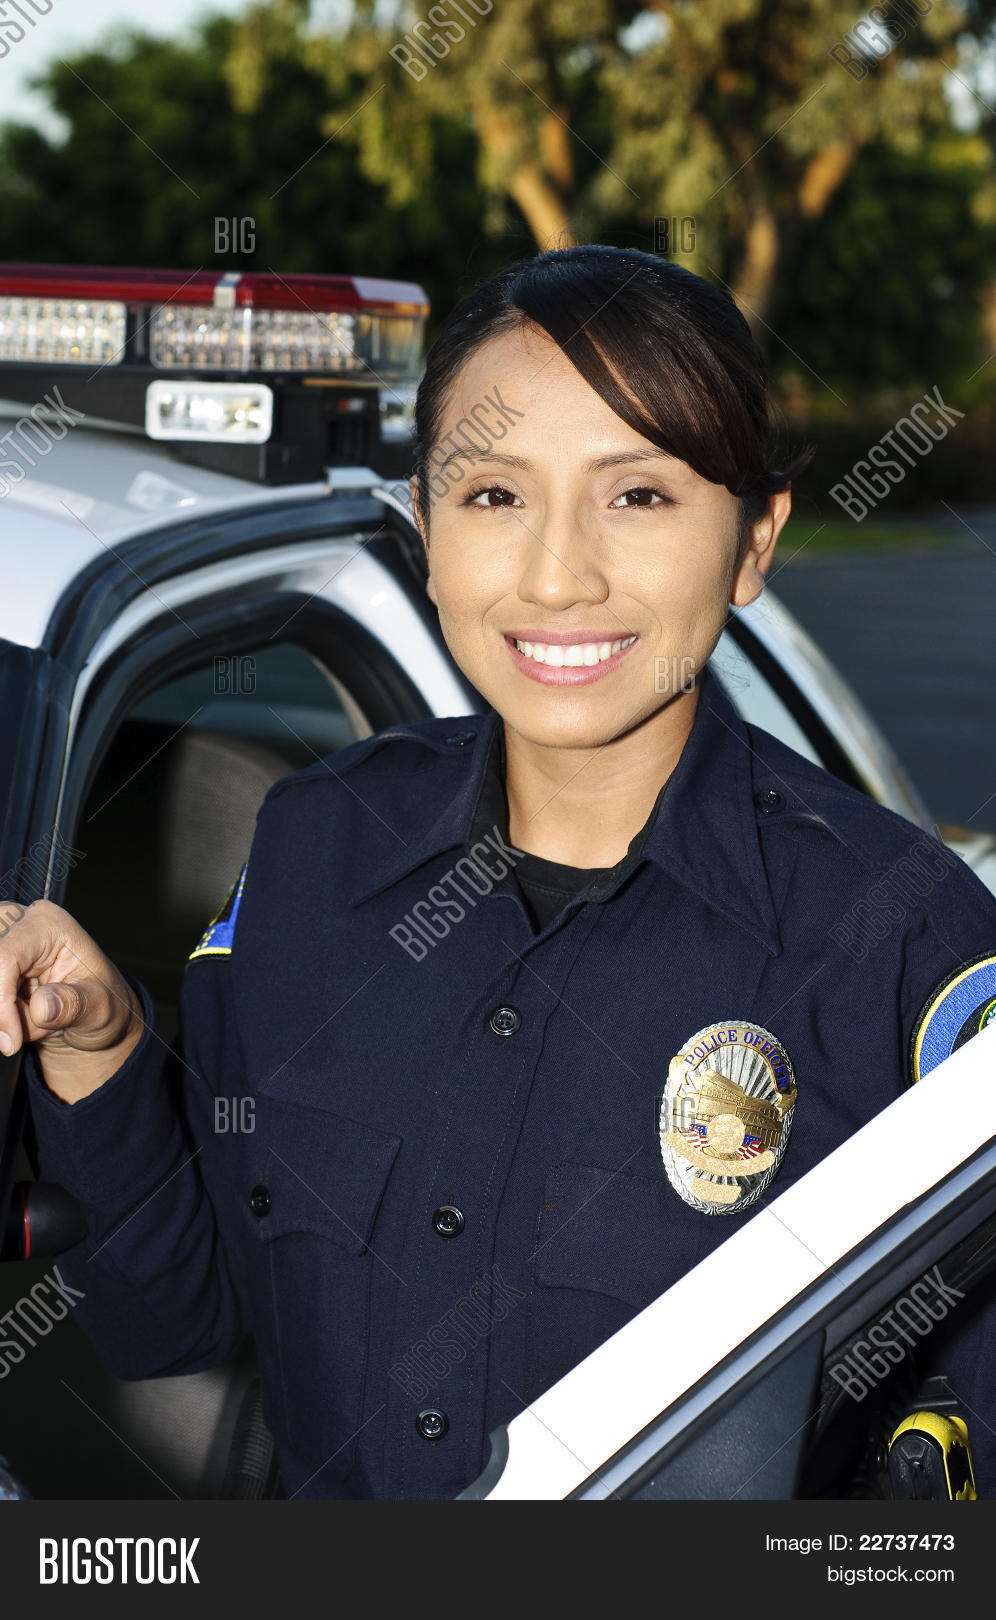 Smiling Police Officer Image Photo Free Trial